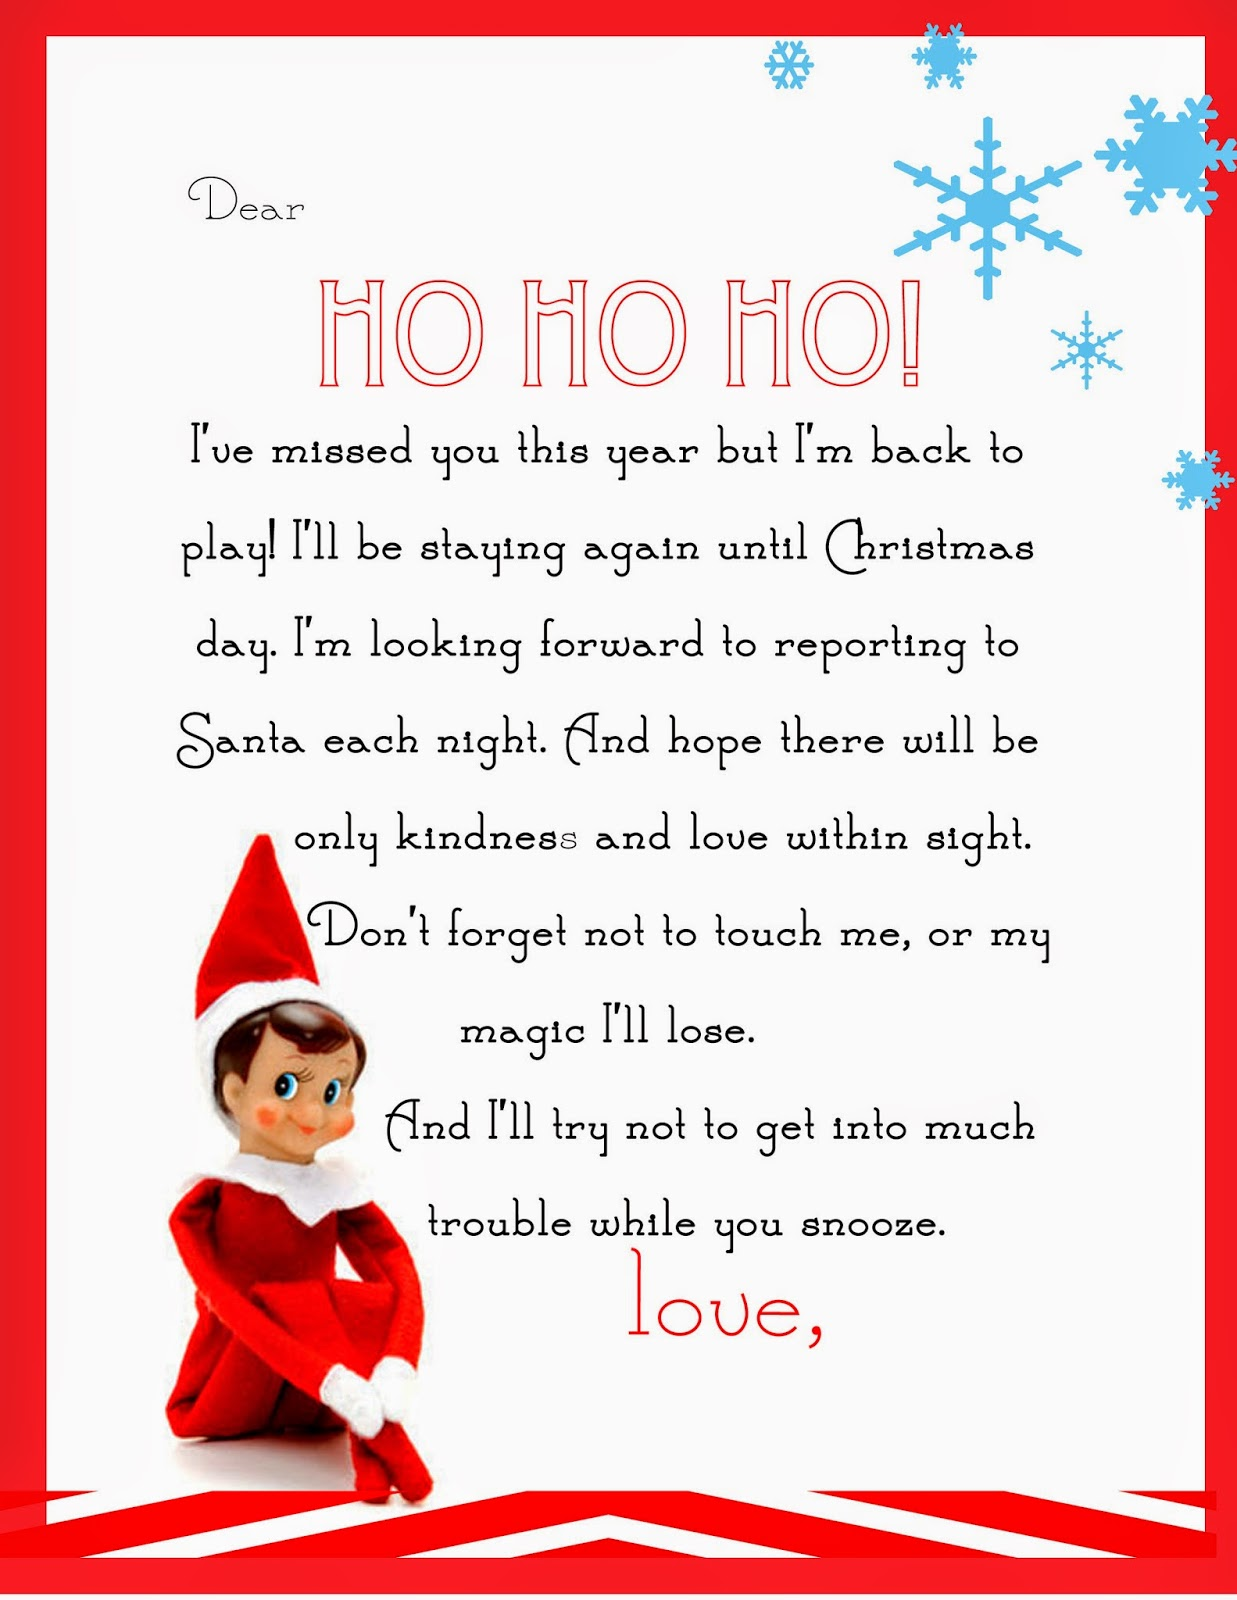 image about Elf on the Shelf Letter Printable referred to as Elf upon the Shelf Letter totally free printable